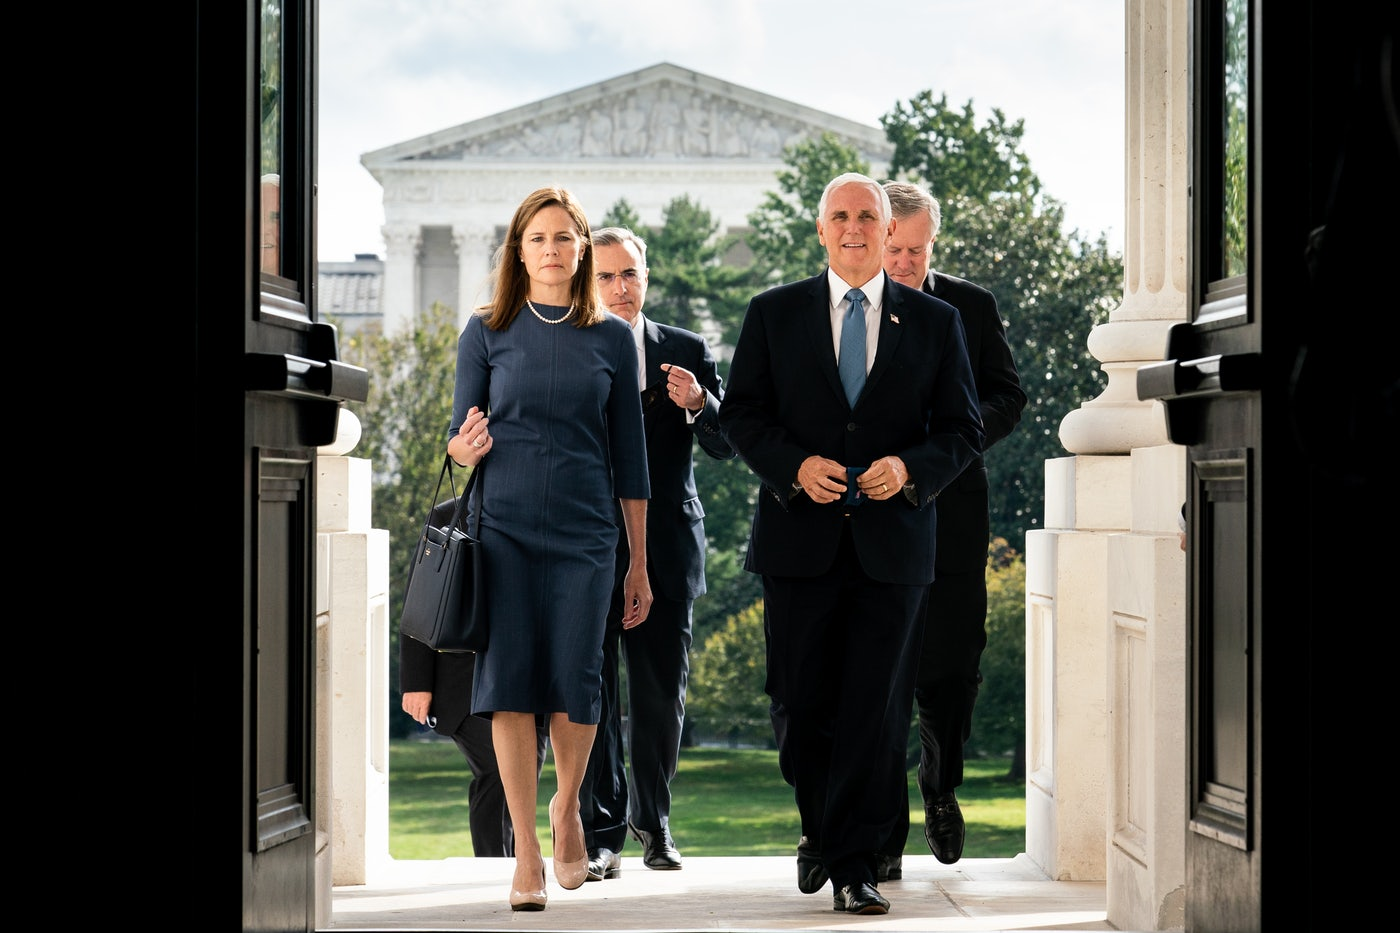 Amy Coney Barrett and Vice President Mike Pence arrive at the U.S. Capitol.